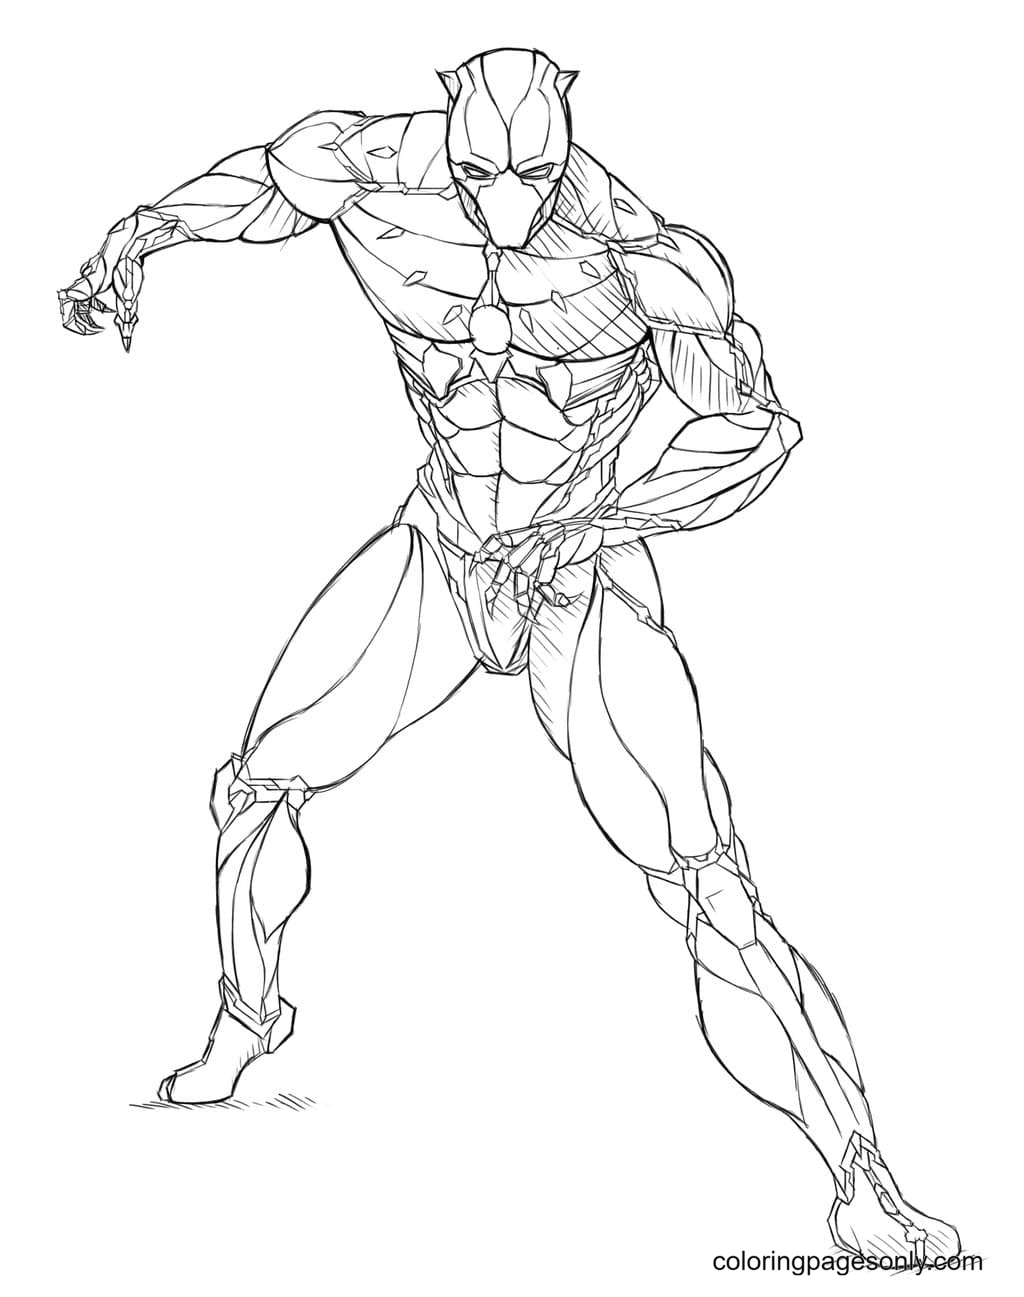 T'Challa is ready to defend his people Coloring Page